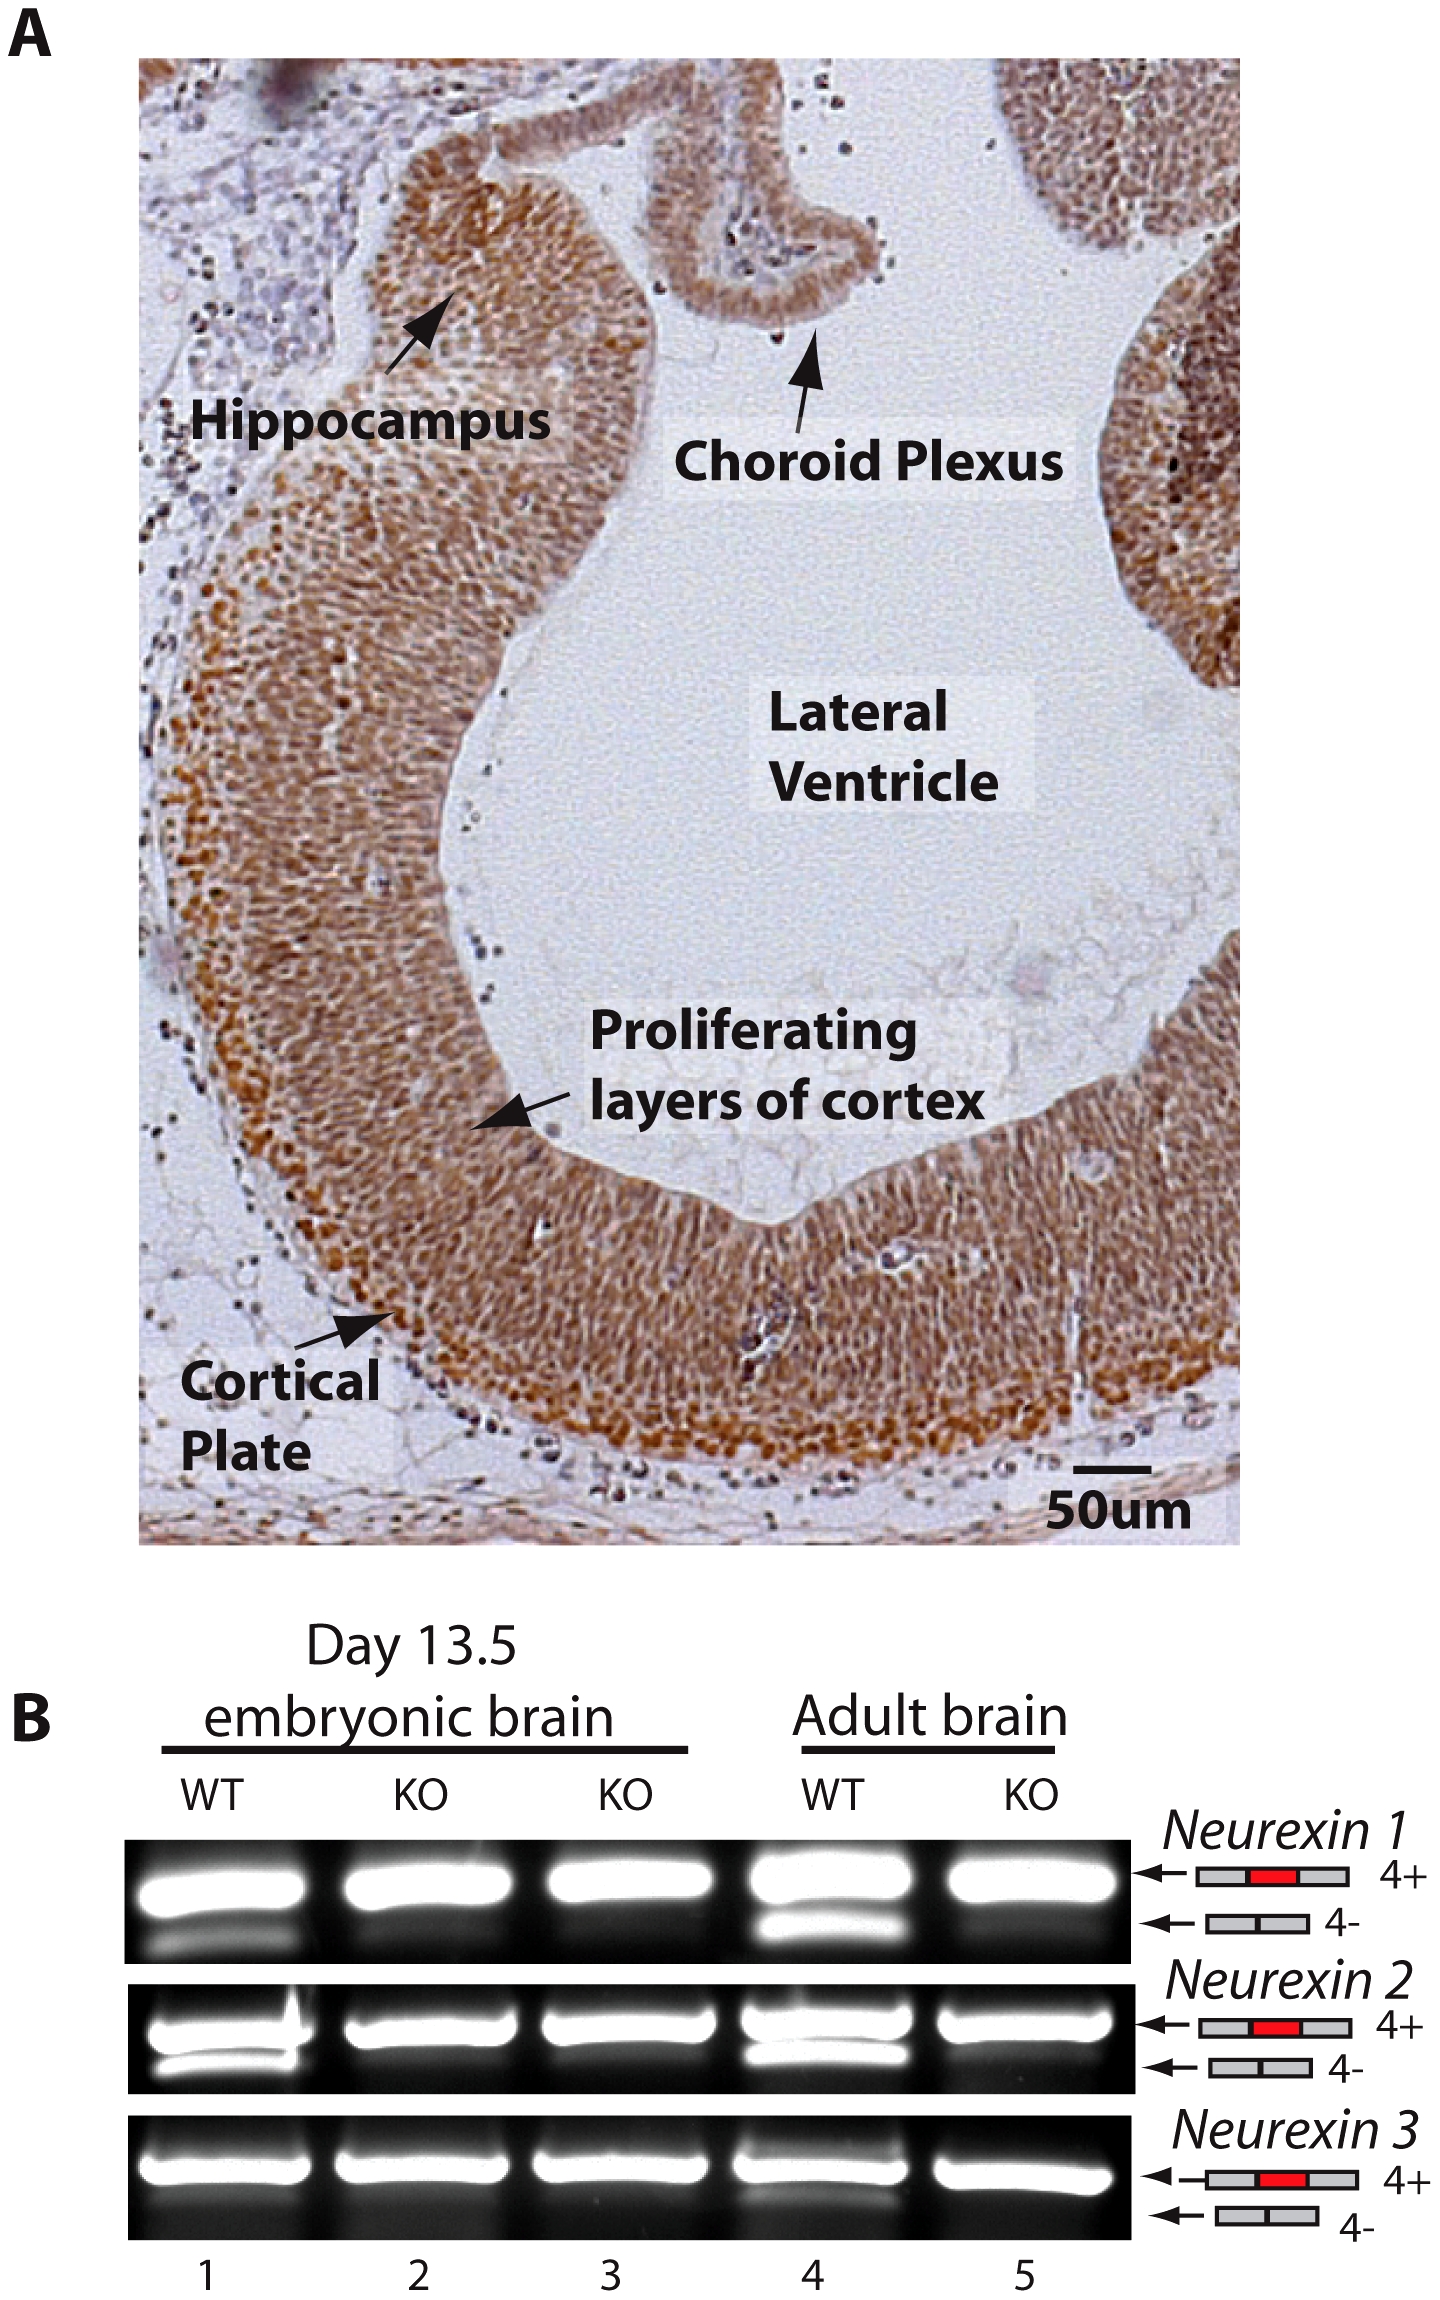 T-STAR protein is expressed in the embryonic brain.